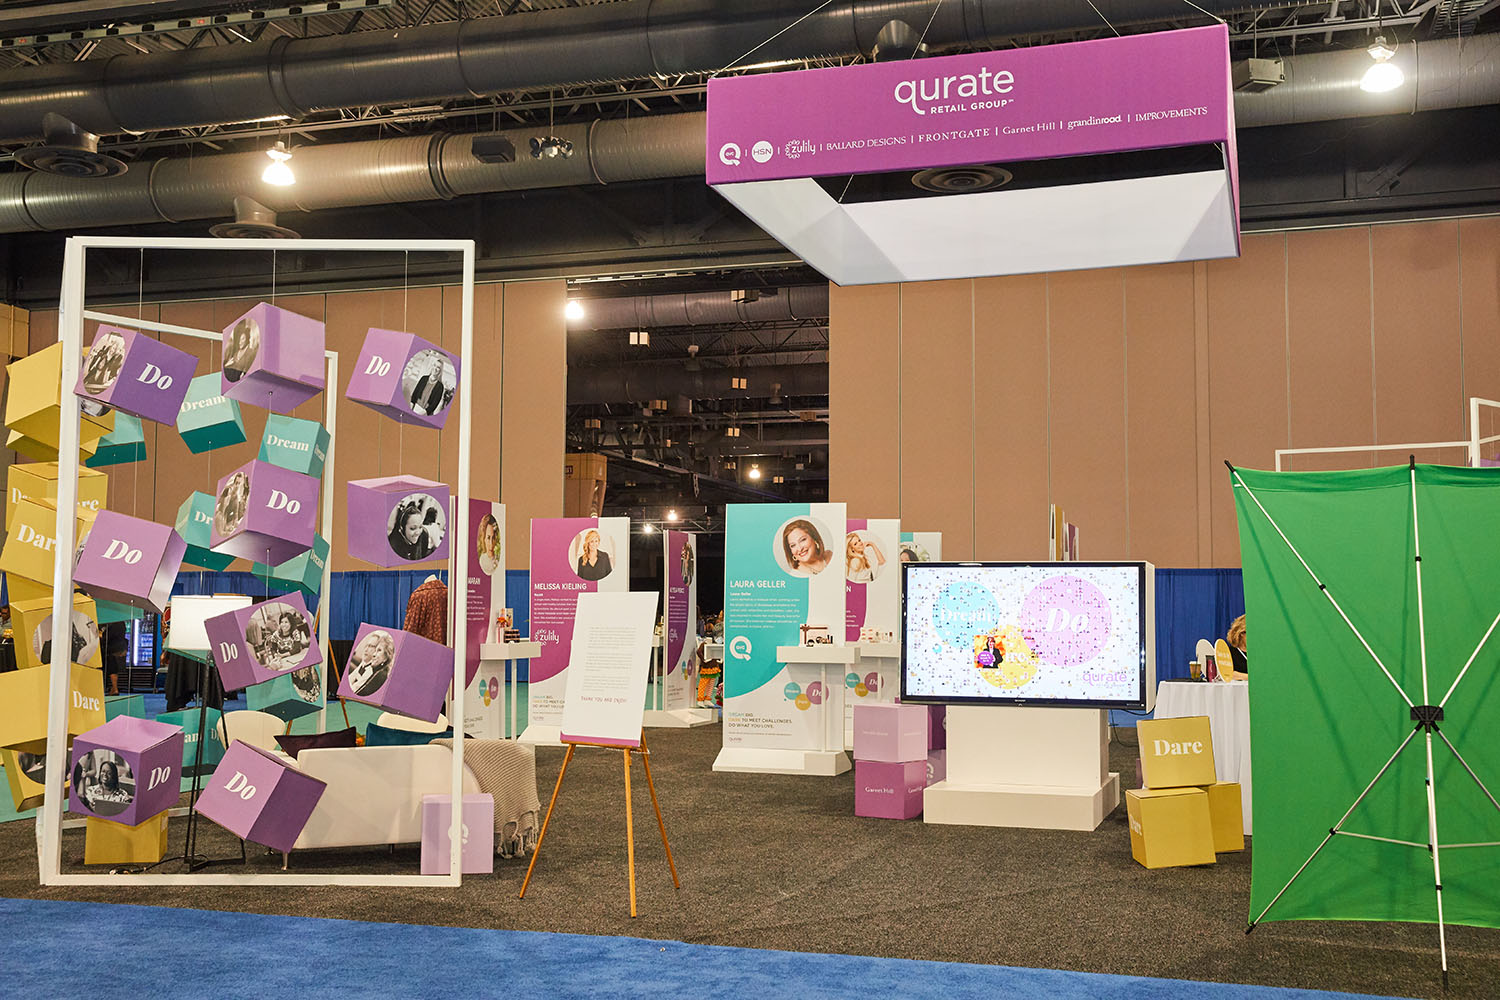 Qurate Retail Group is a sponsor of the 2018 PA Conference for Women.